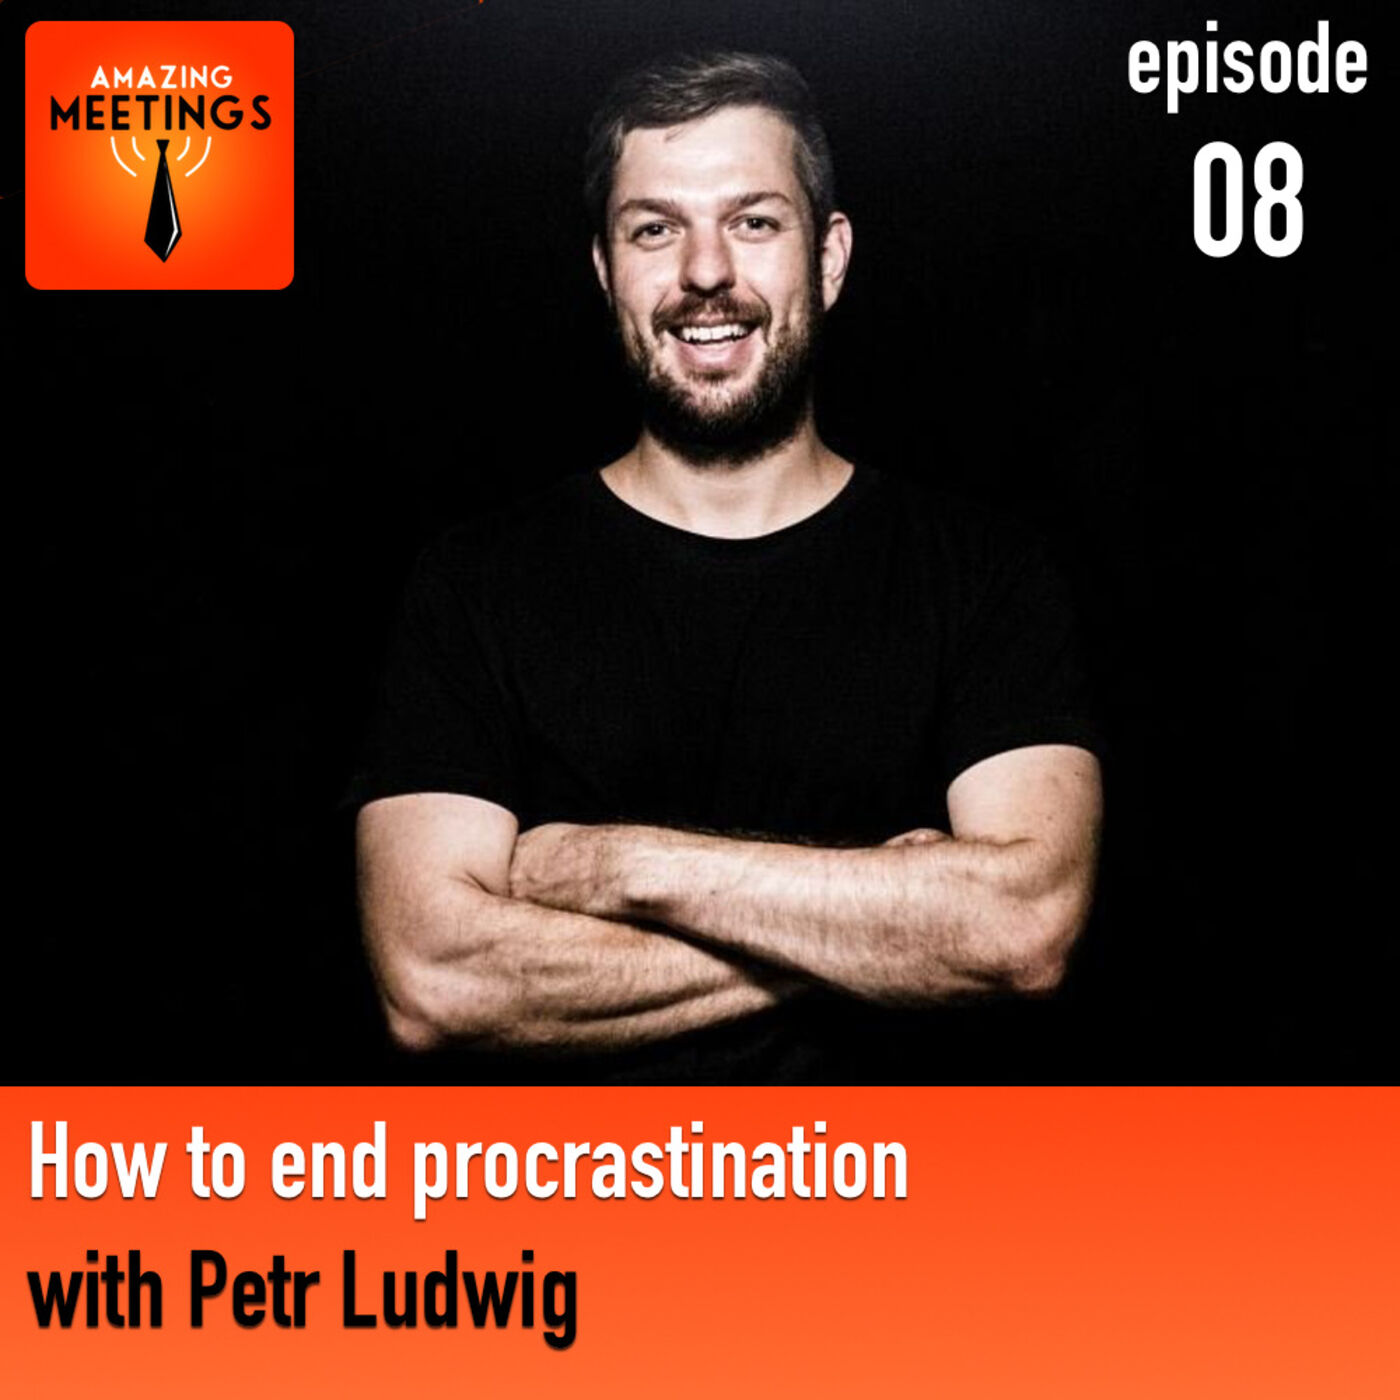 How to end procrastination with Petr Ludwig